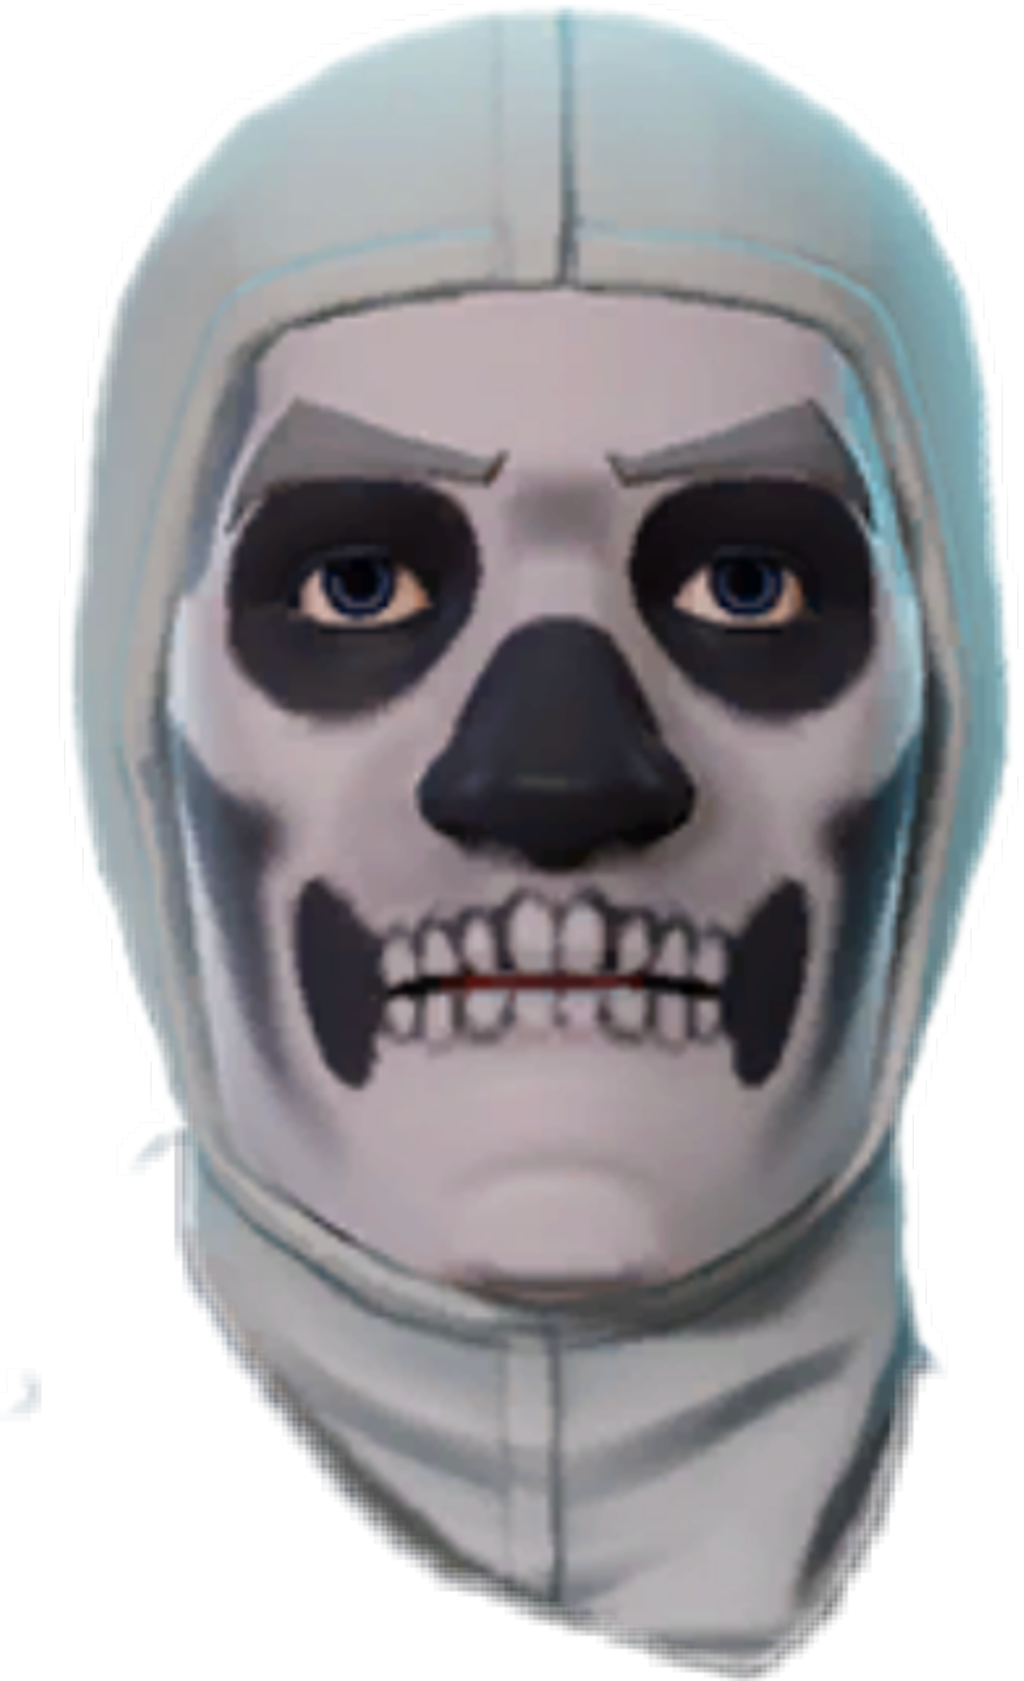 Skull trooper clipart face. Skulltrooper sticker by olavi